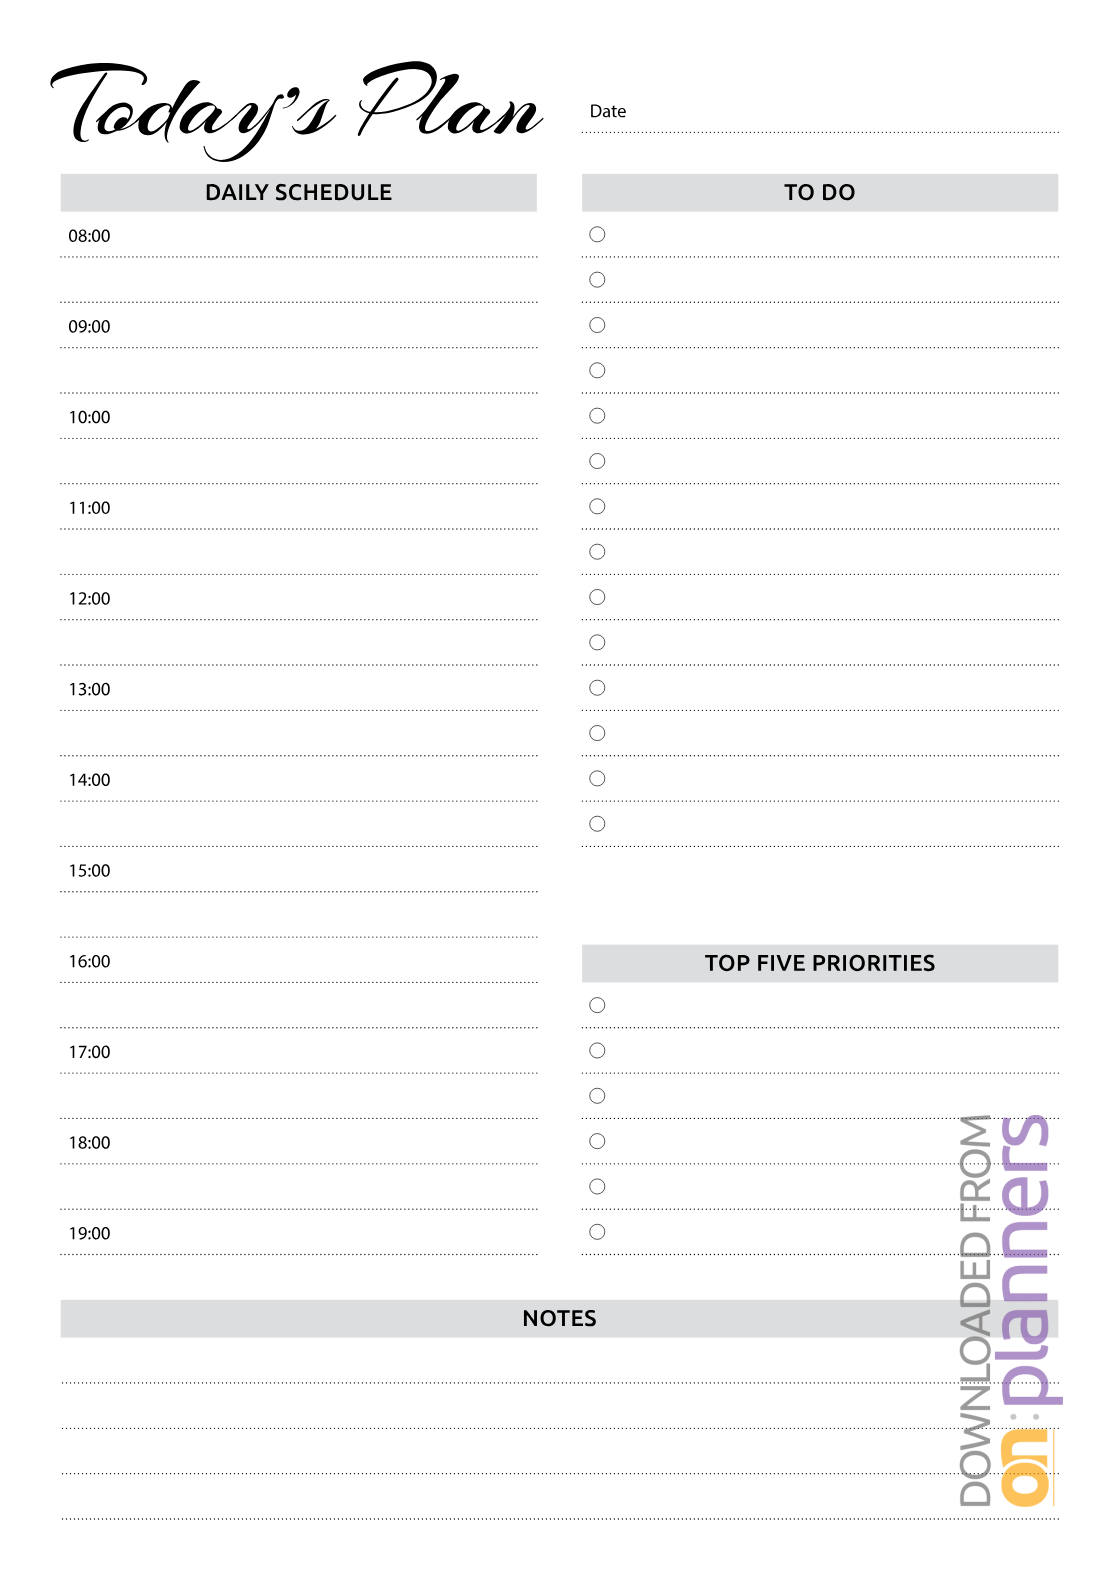 Download Printable Daily Planner With Hourly Schedule & To intended for Printable Weekly Hourly Schedule